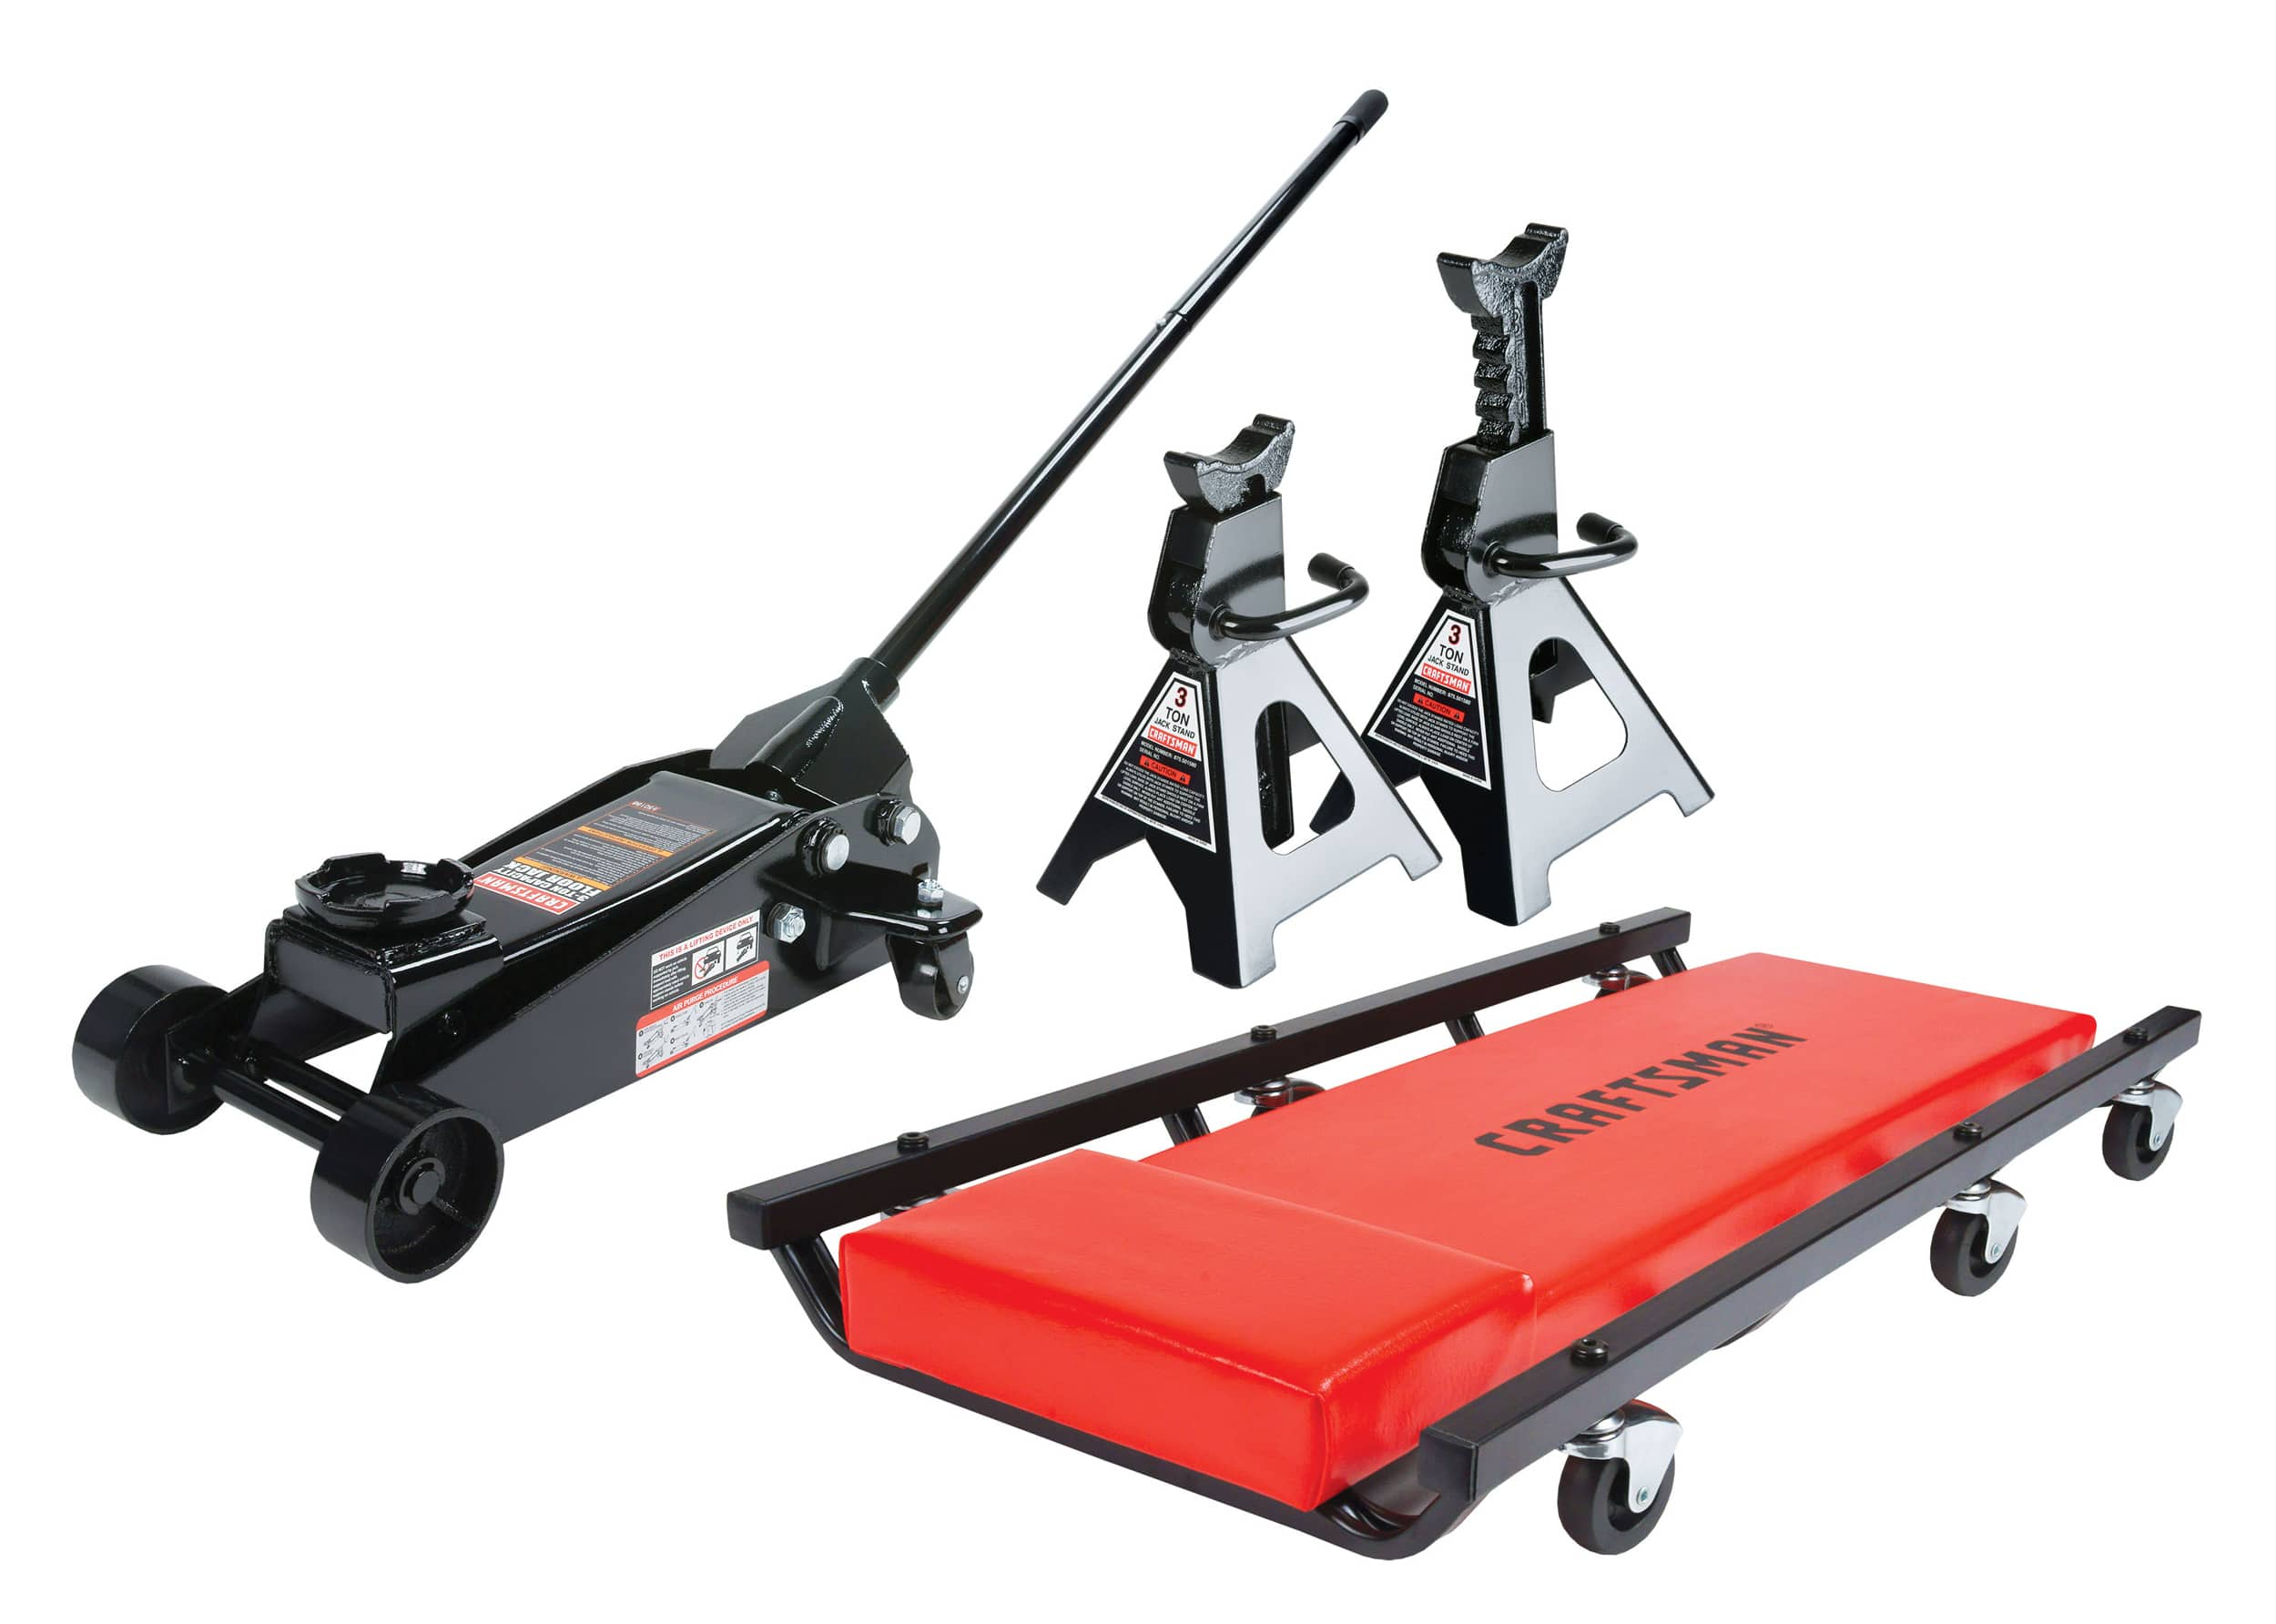 Craftsman 3 Ton Floor Jack With Jack Stands And Creeper